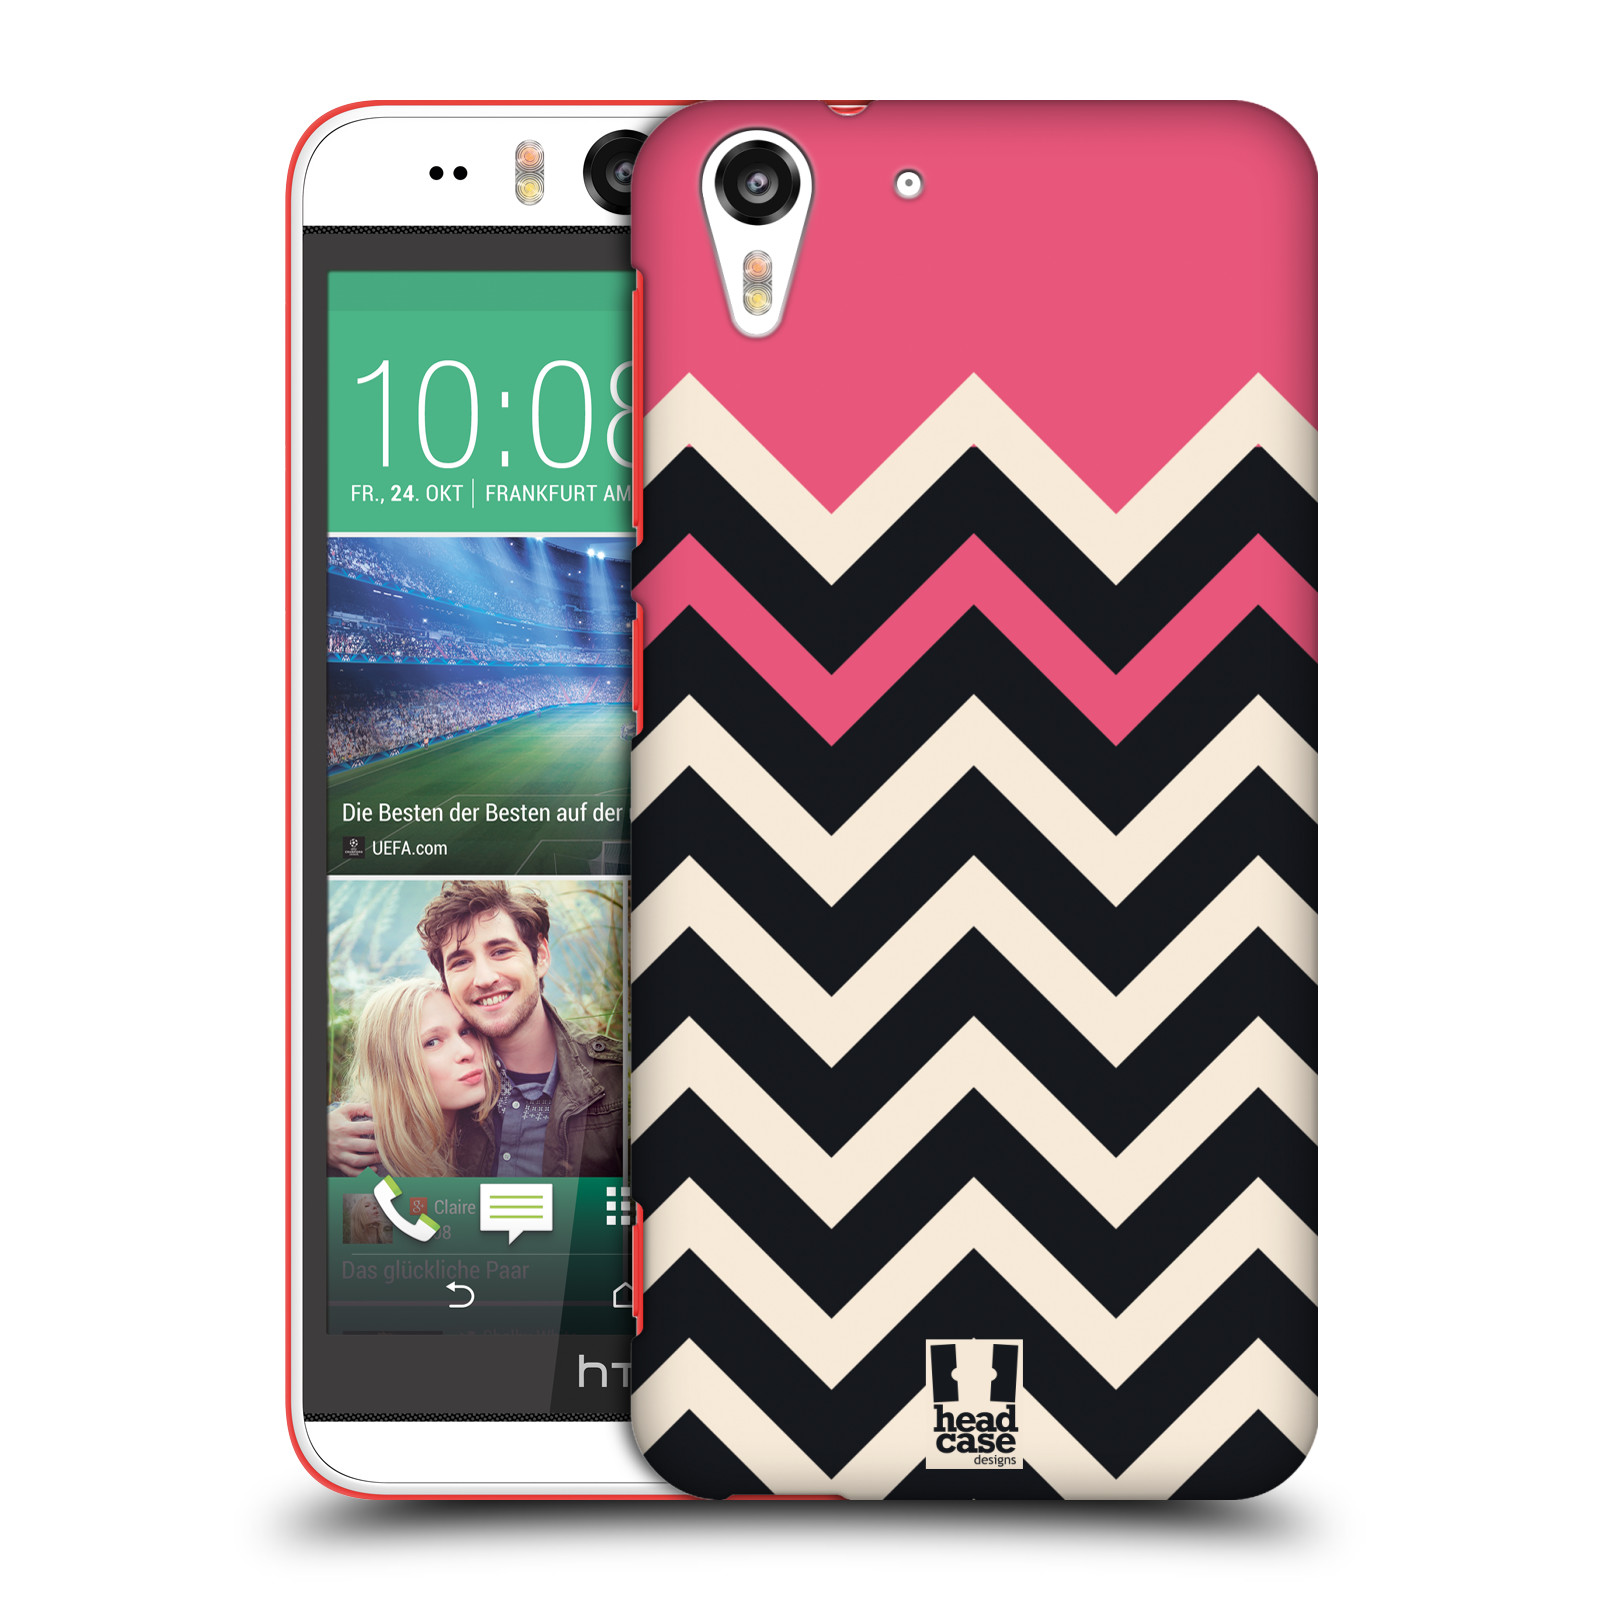 HEAD CASE DESIGNS COLOUR BLOCK CHEVRON HARD BACK CASE FOR HTC DESIRE EYE LTE